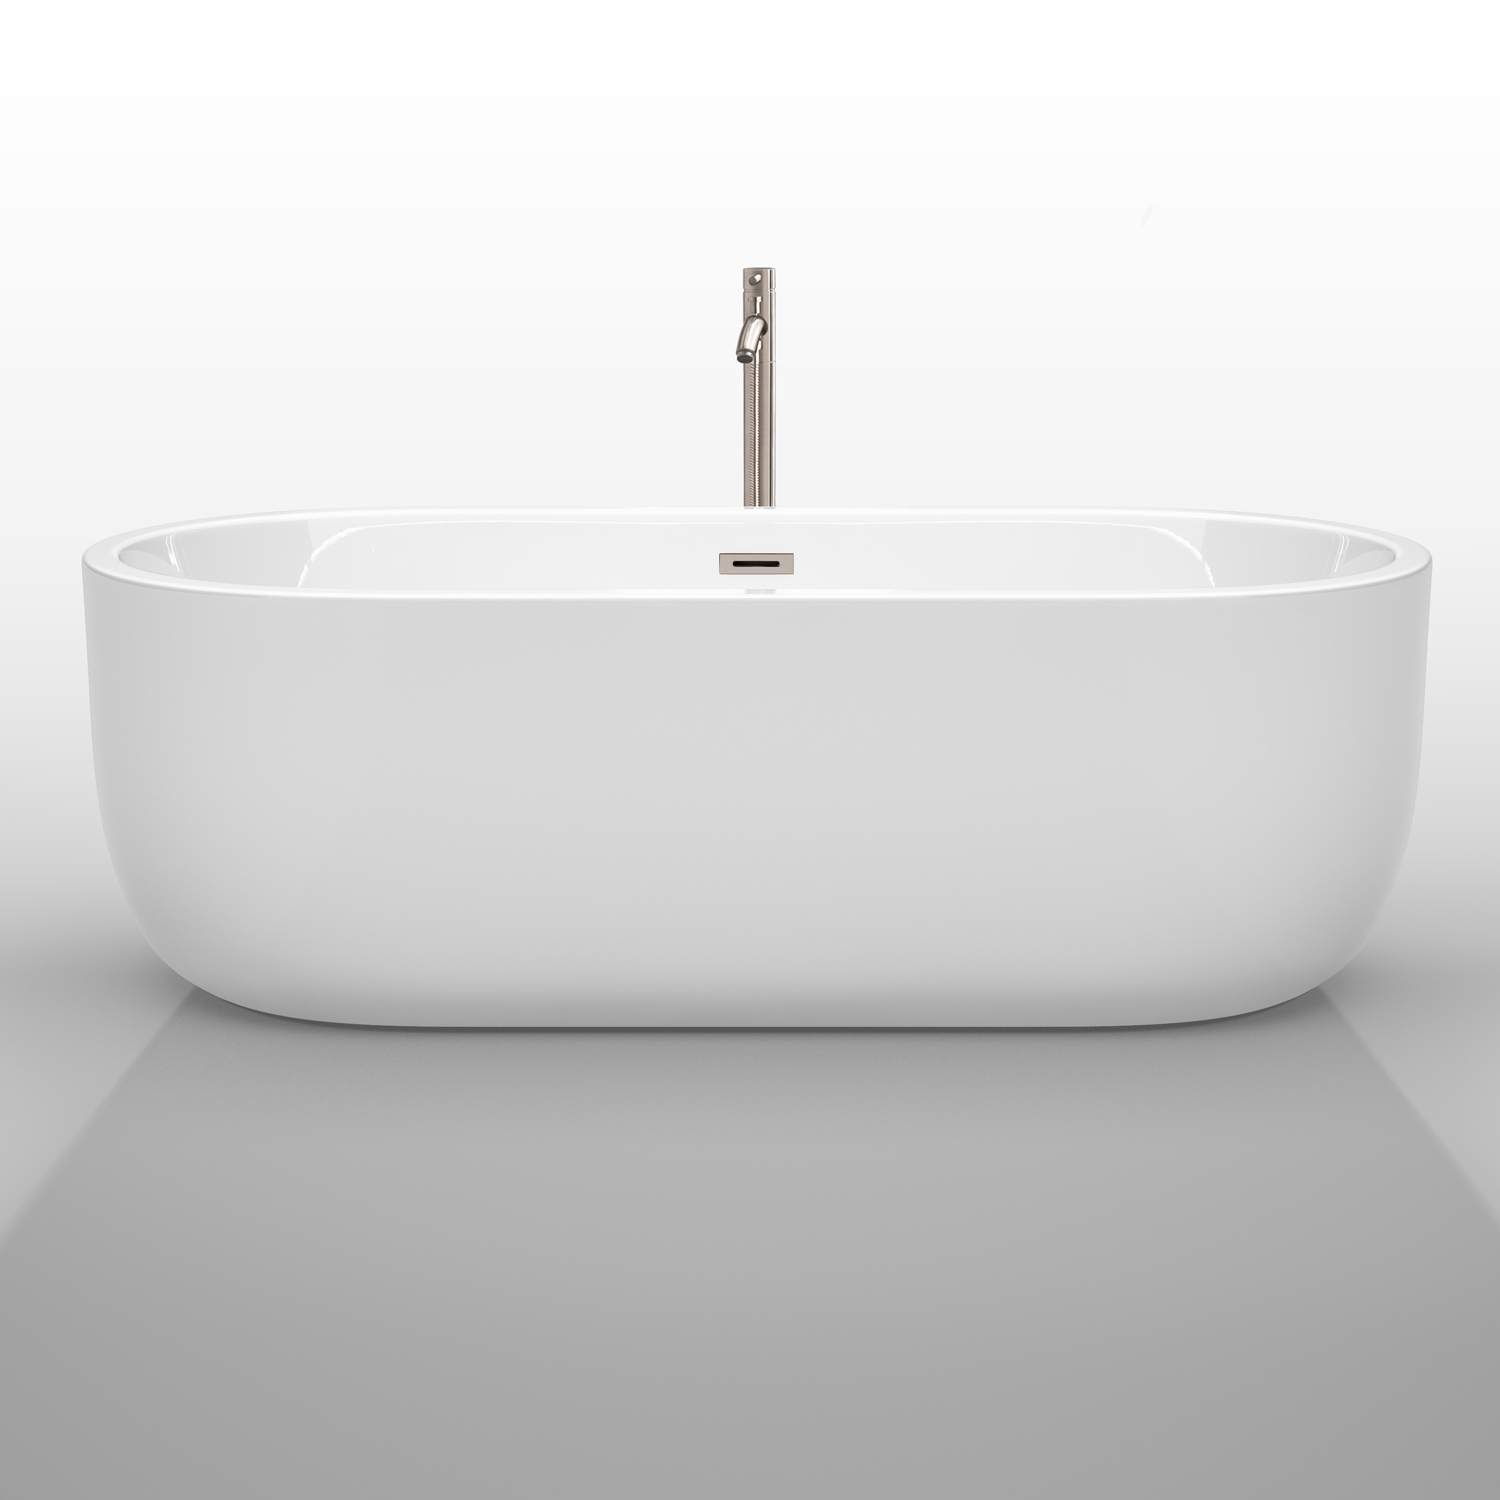 60 Juliette Freestanding Bathtub in White With Drain and